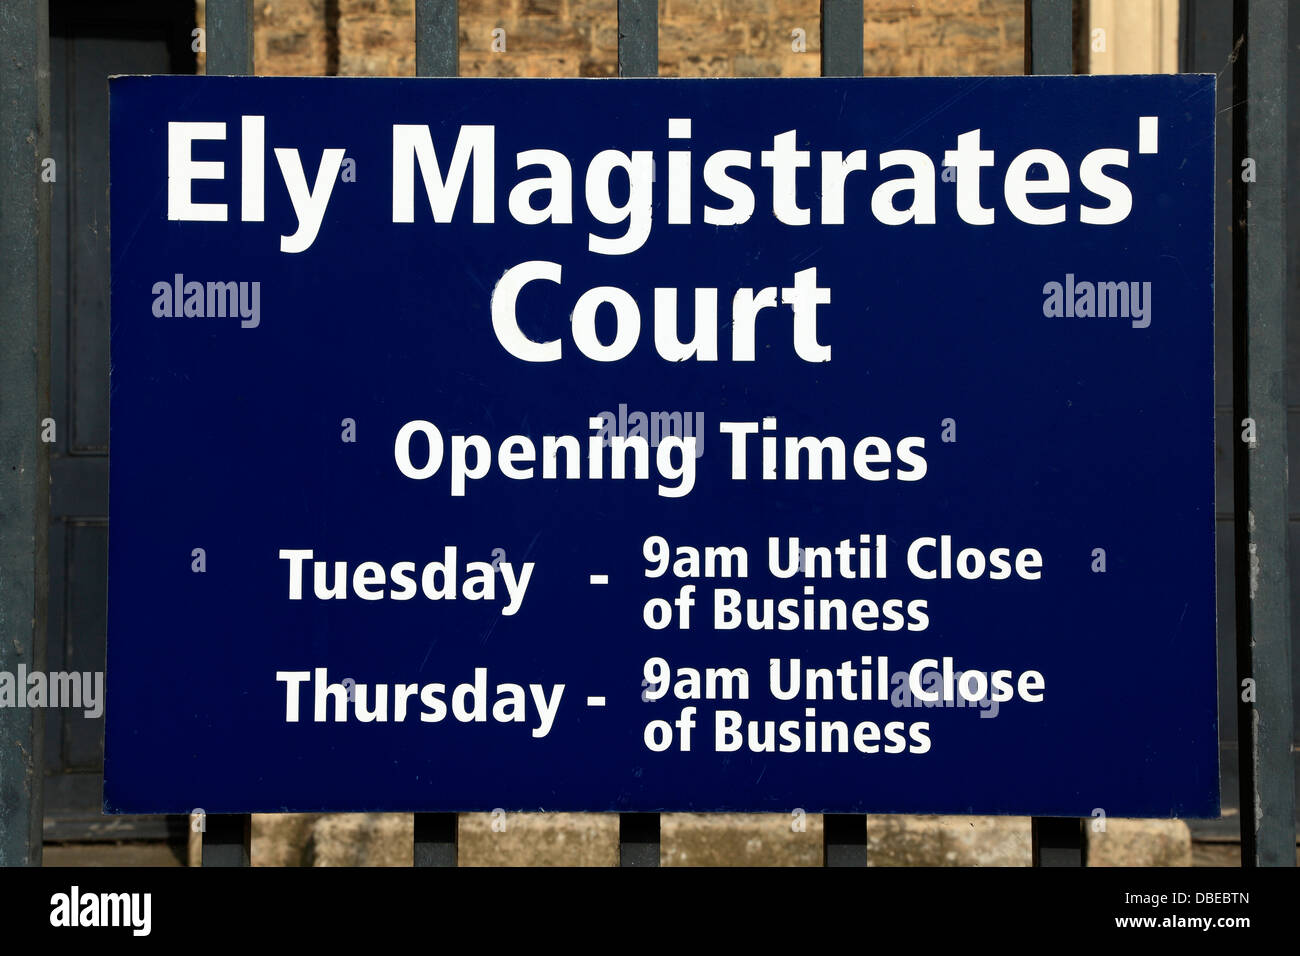 Ely Magistrates Court, sign, Cambridgeshire England UK - Stock Image